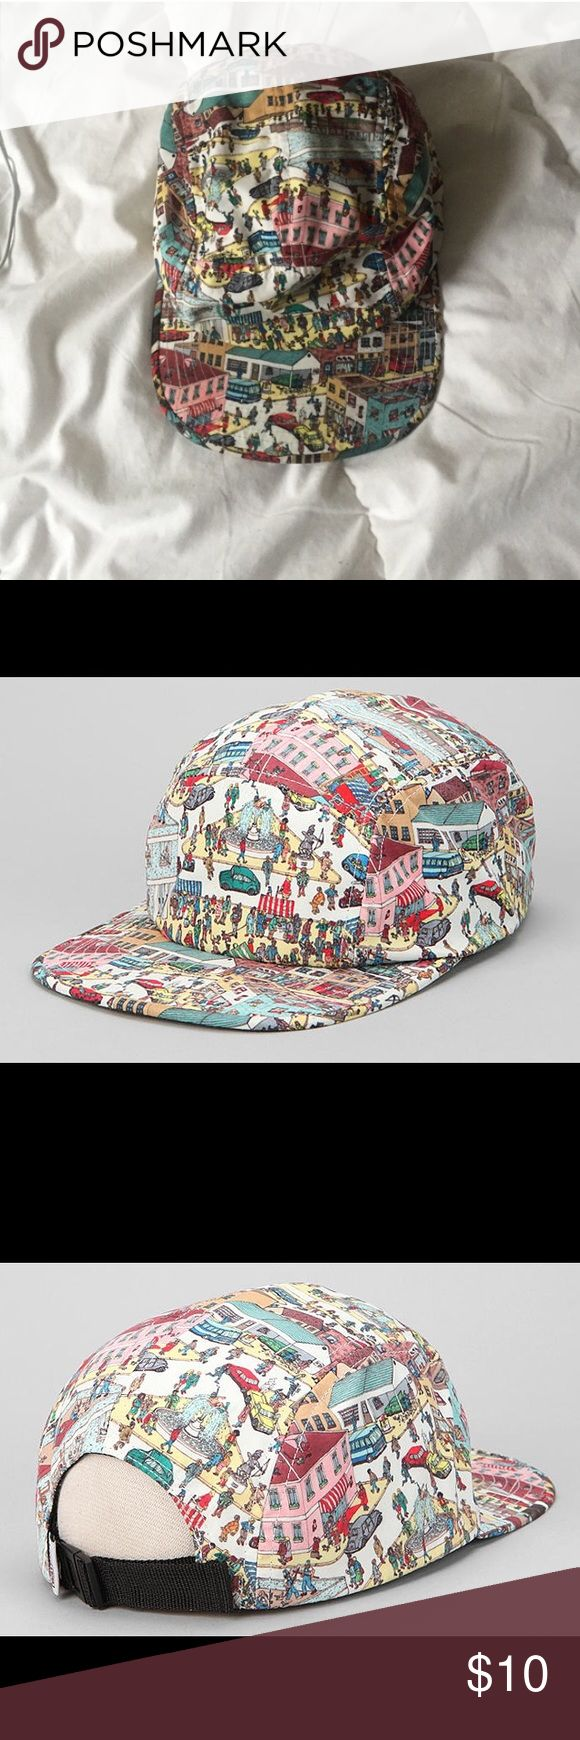 (Re-posh) Where's Waldo Hat Never worn, bought from another posher because I thought it was really cute but never found the occasion to wear it. I believe this was bought at forever 21 but I'm not positive since I didn't buy it myself. Urban Outfitters Accessories Hats